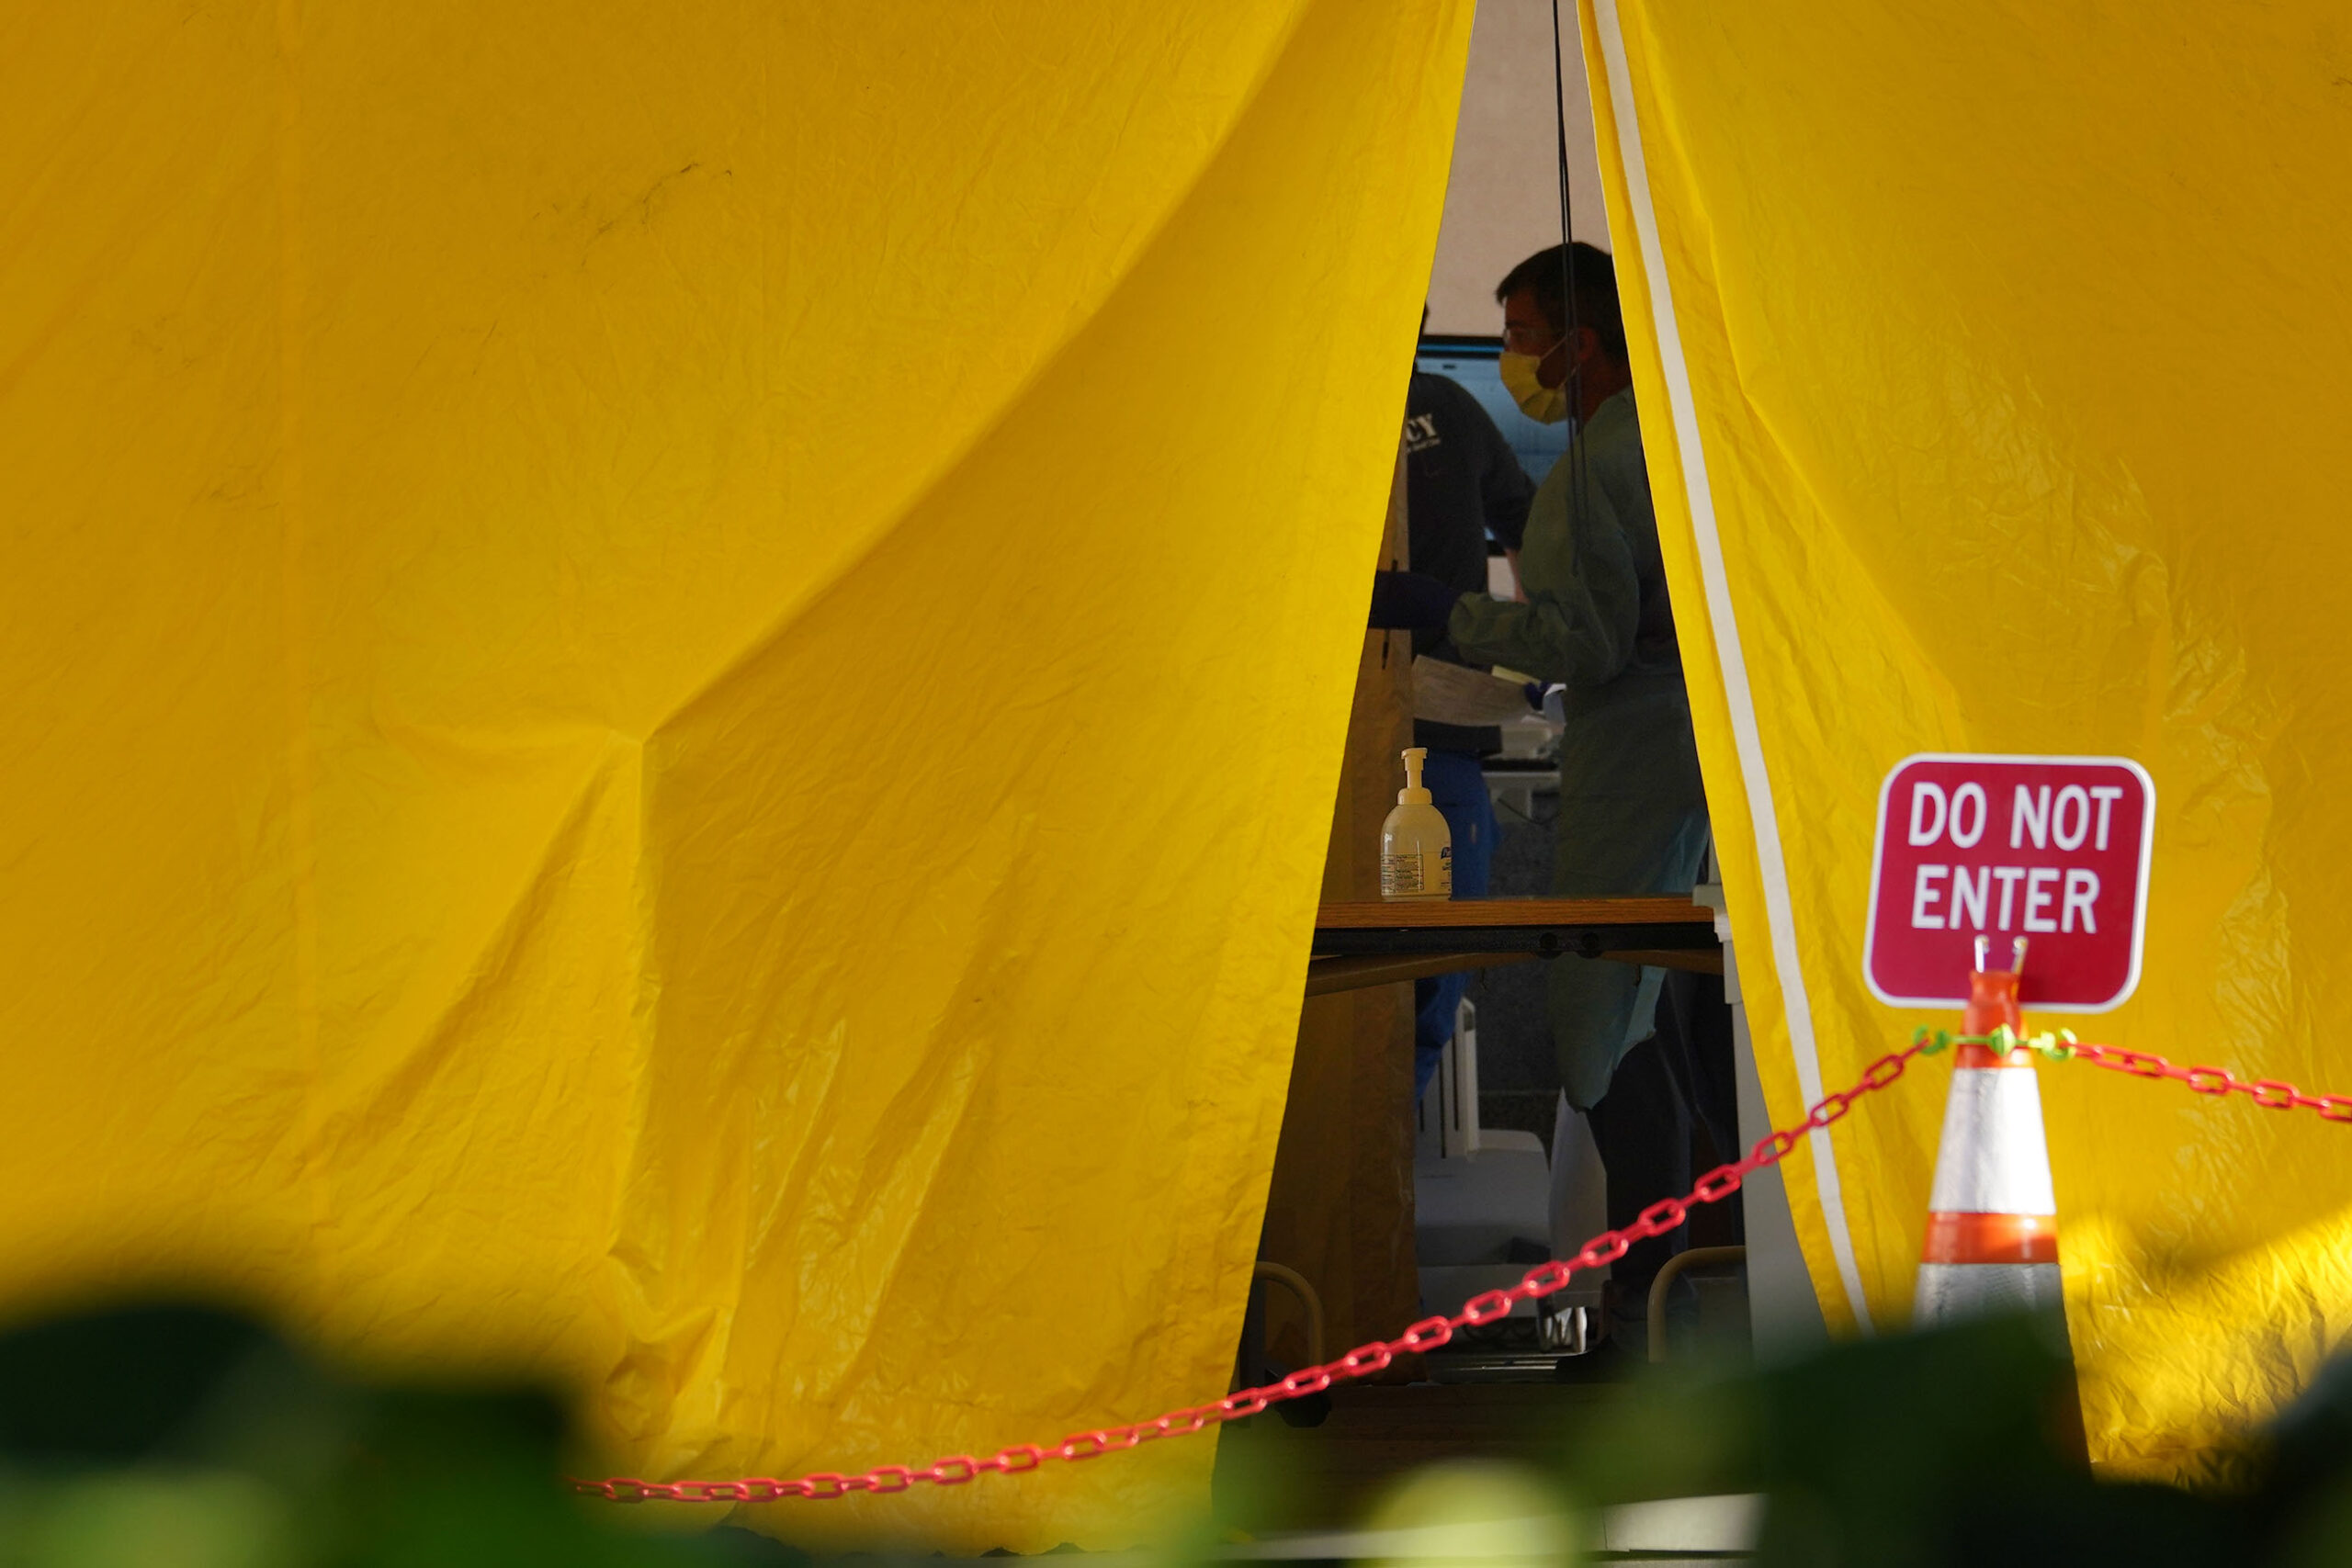 <p>By mid-March, hospitals began to prepare for a surge of COVID-19 cases that didn't quite arrive. Here a staff member at The Queen's Medical Center works inside a tent outside the emergency room on Punchbowl Street.</p>